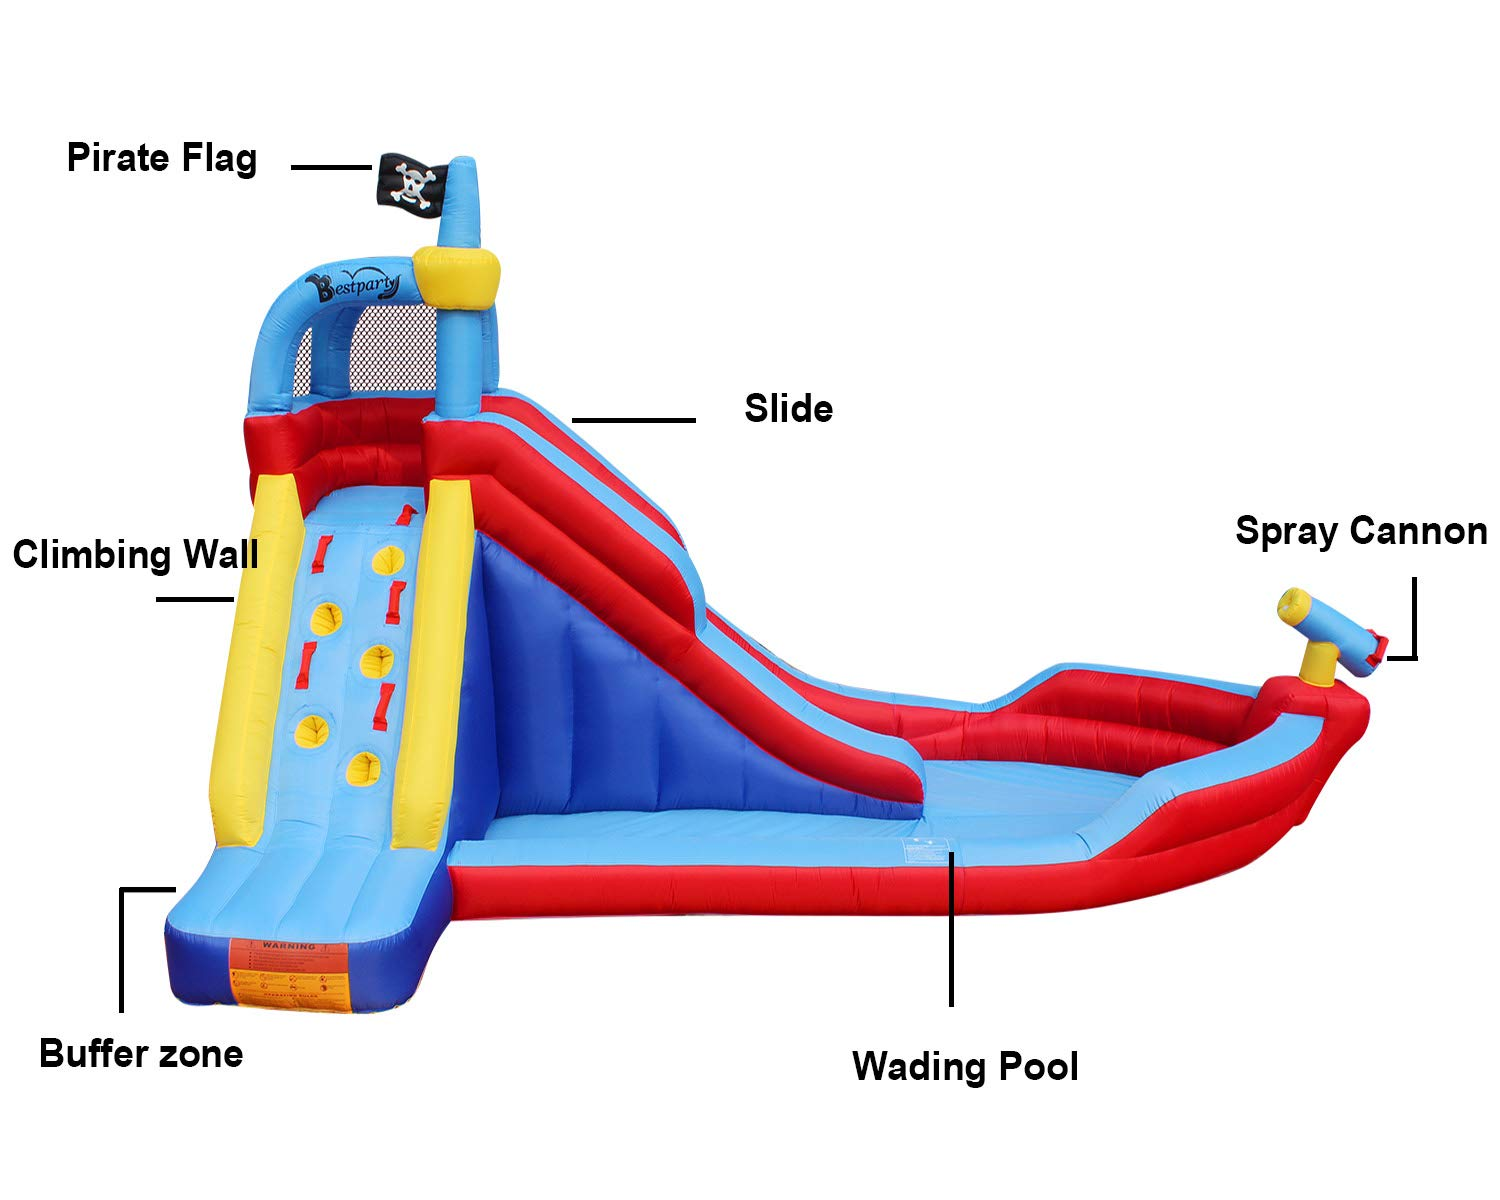 RETRO JUMP Inflatable Pirate Boat Bouncy Water Slide with Blower Climbing Wall Water Park for Kids by RETRO JUMP (Image #5)